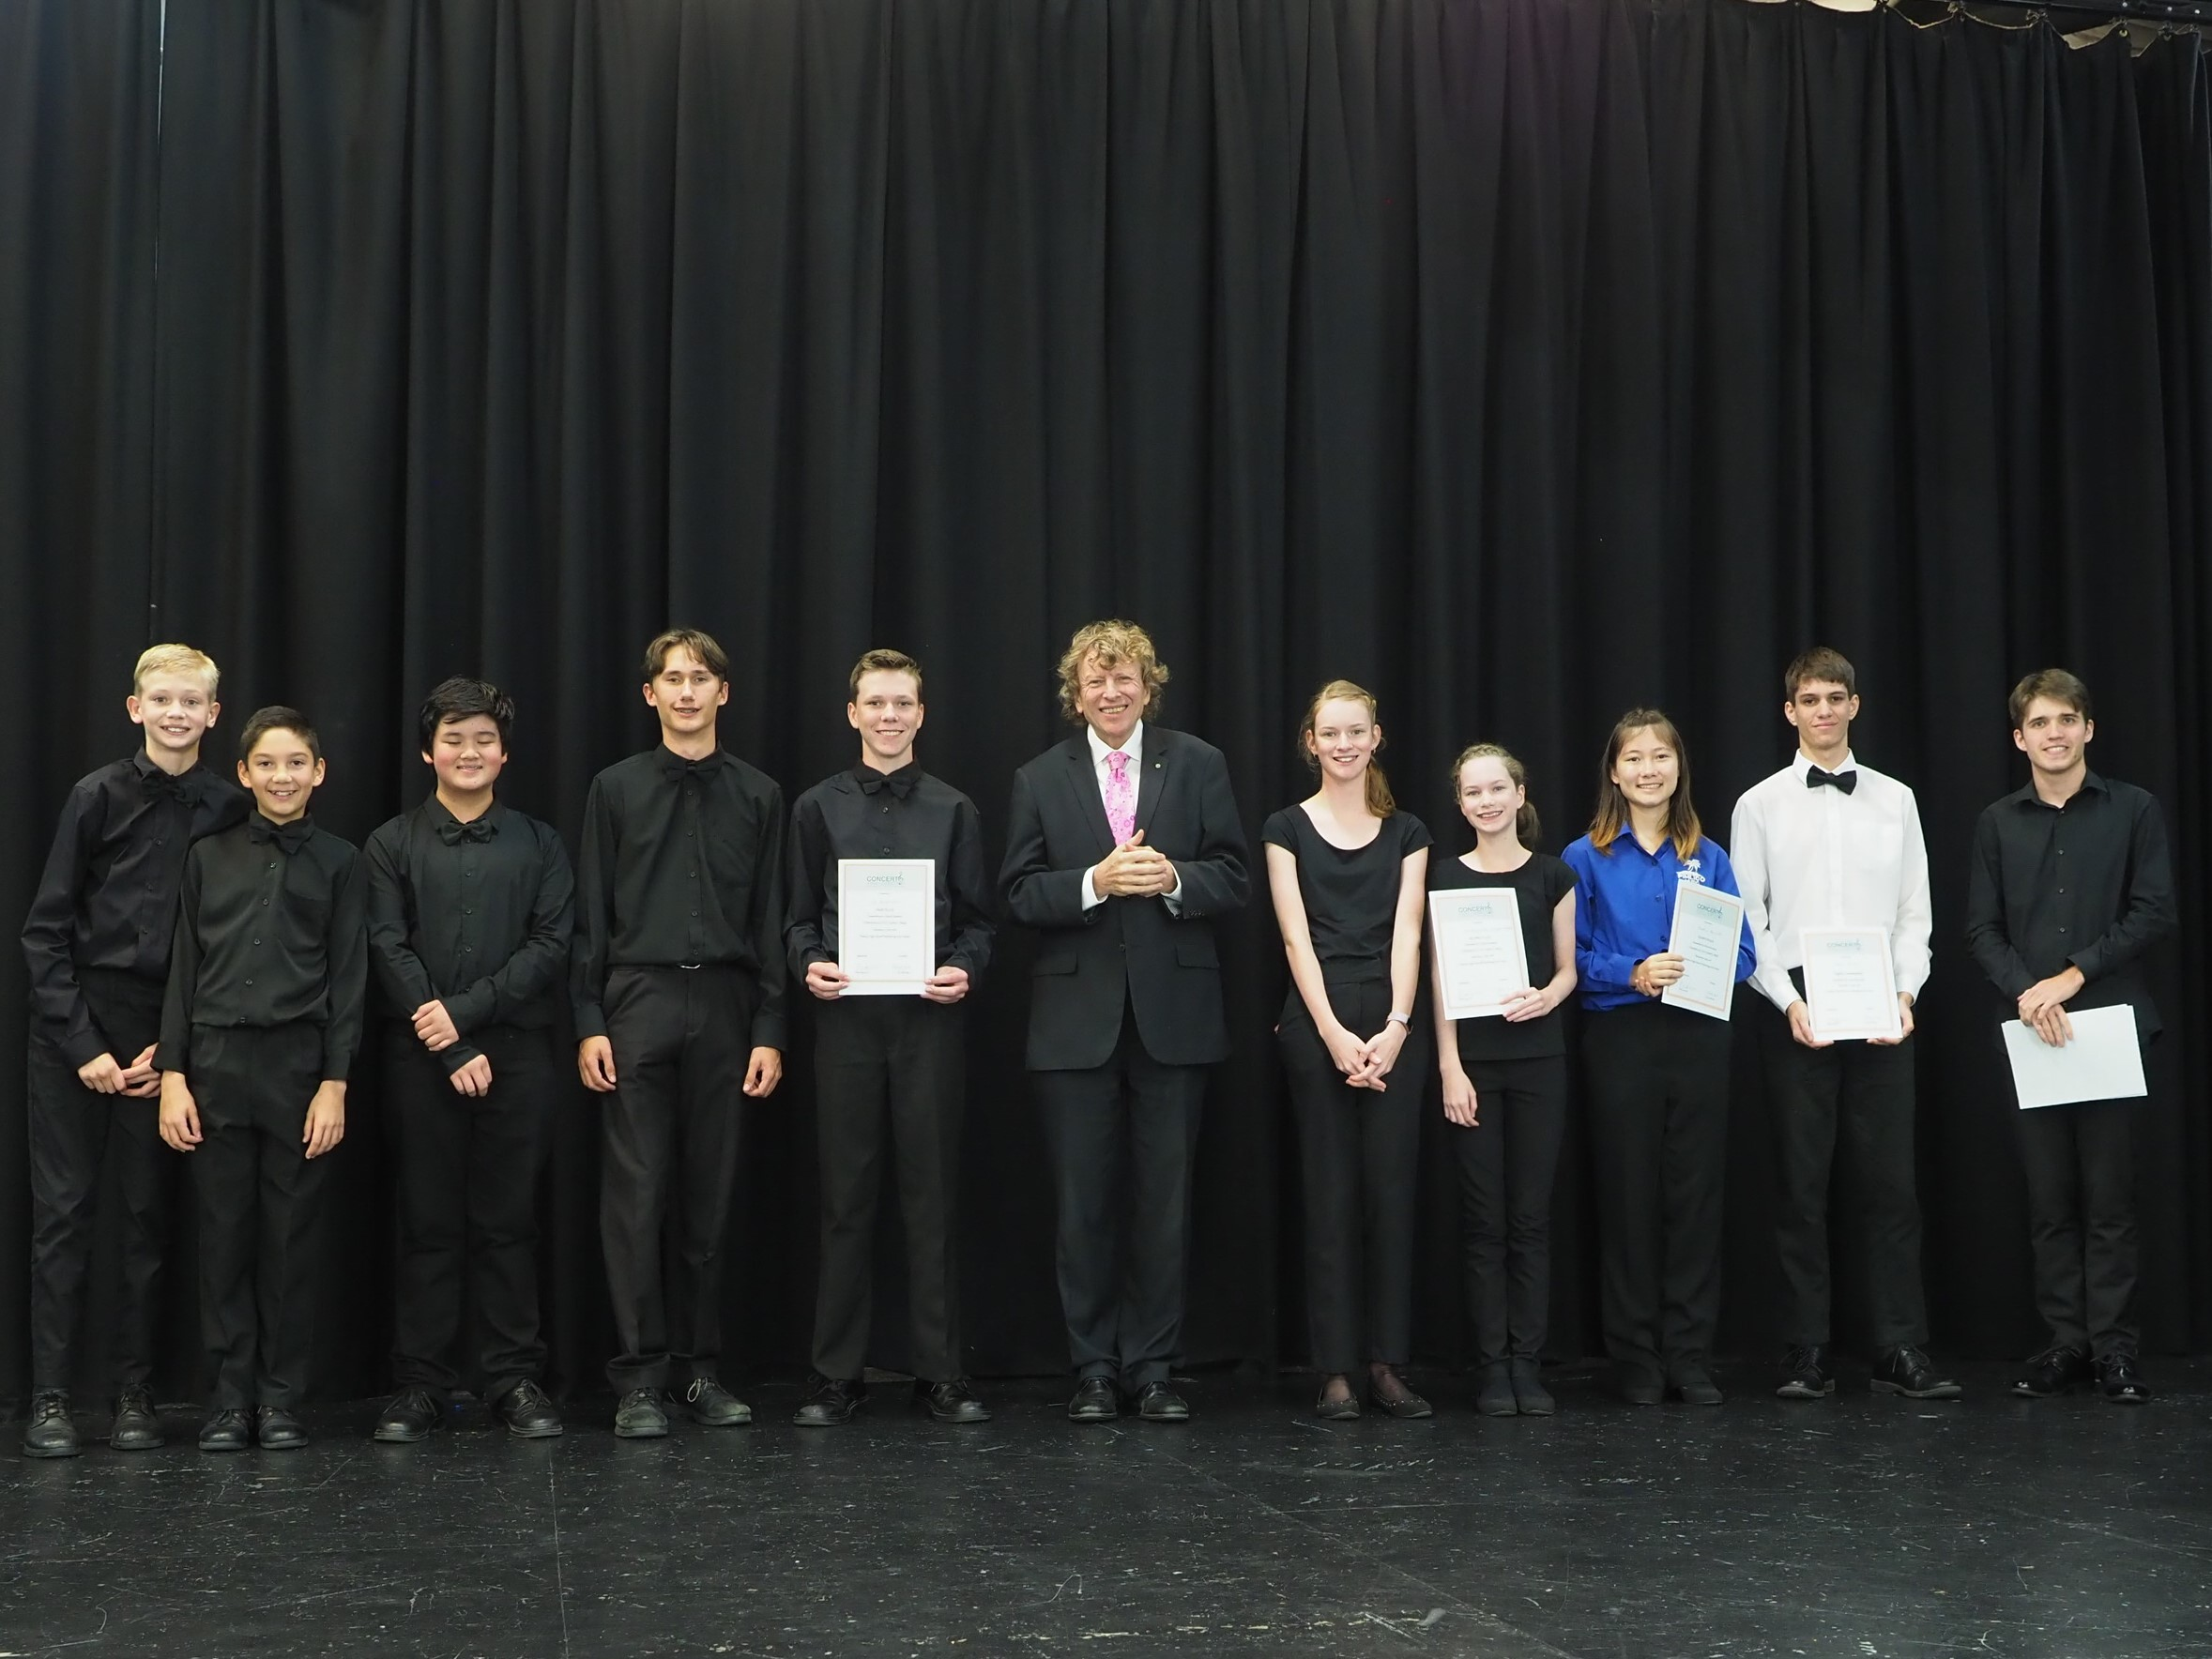 Prize winners with Piers Lane, Adjudicator